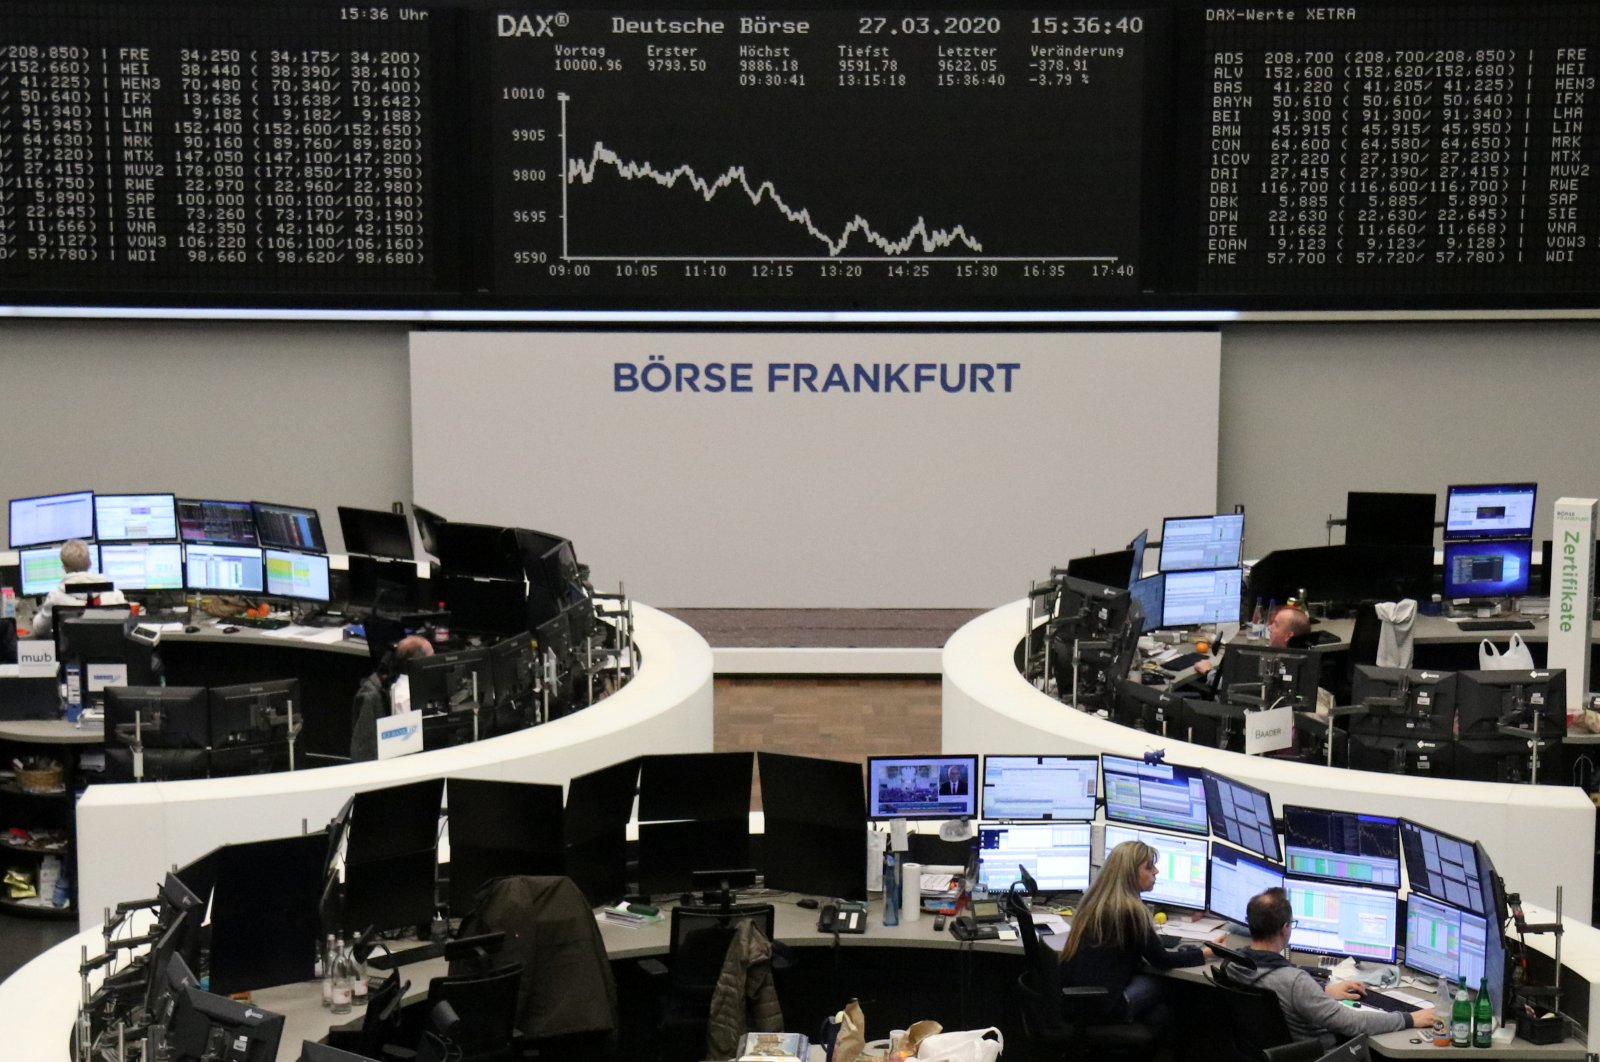 The German share price index DAX graph is pictured at the stock exchange in Frankfurt, Germany, Friday, March 27, 2020. (Reuters Photo)